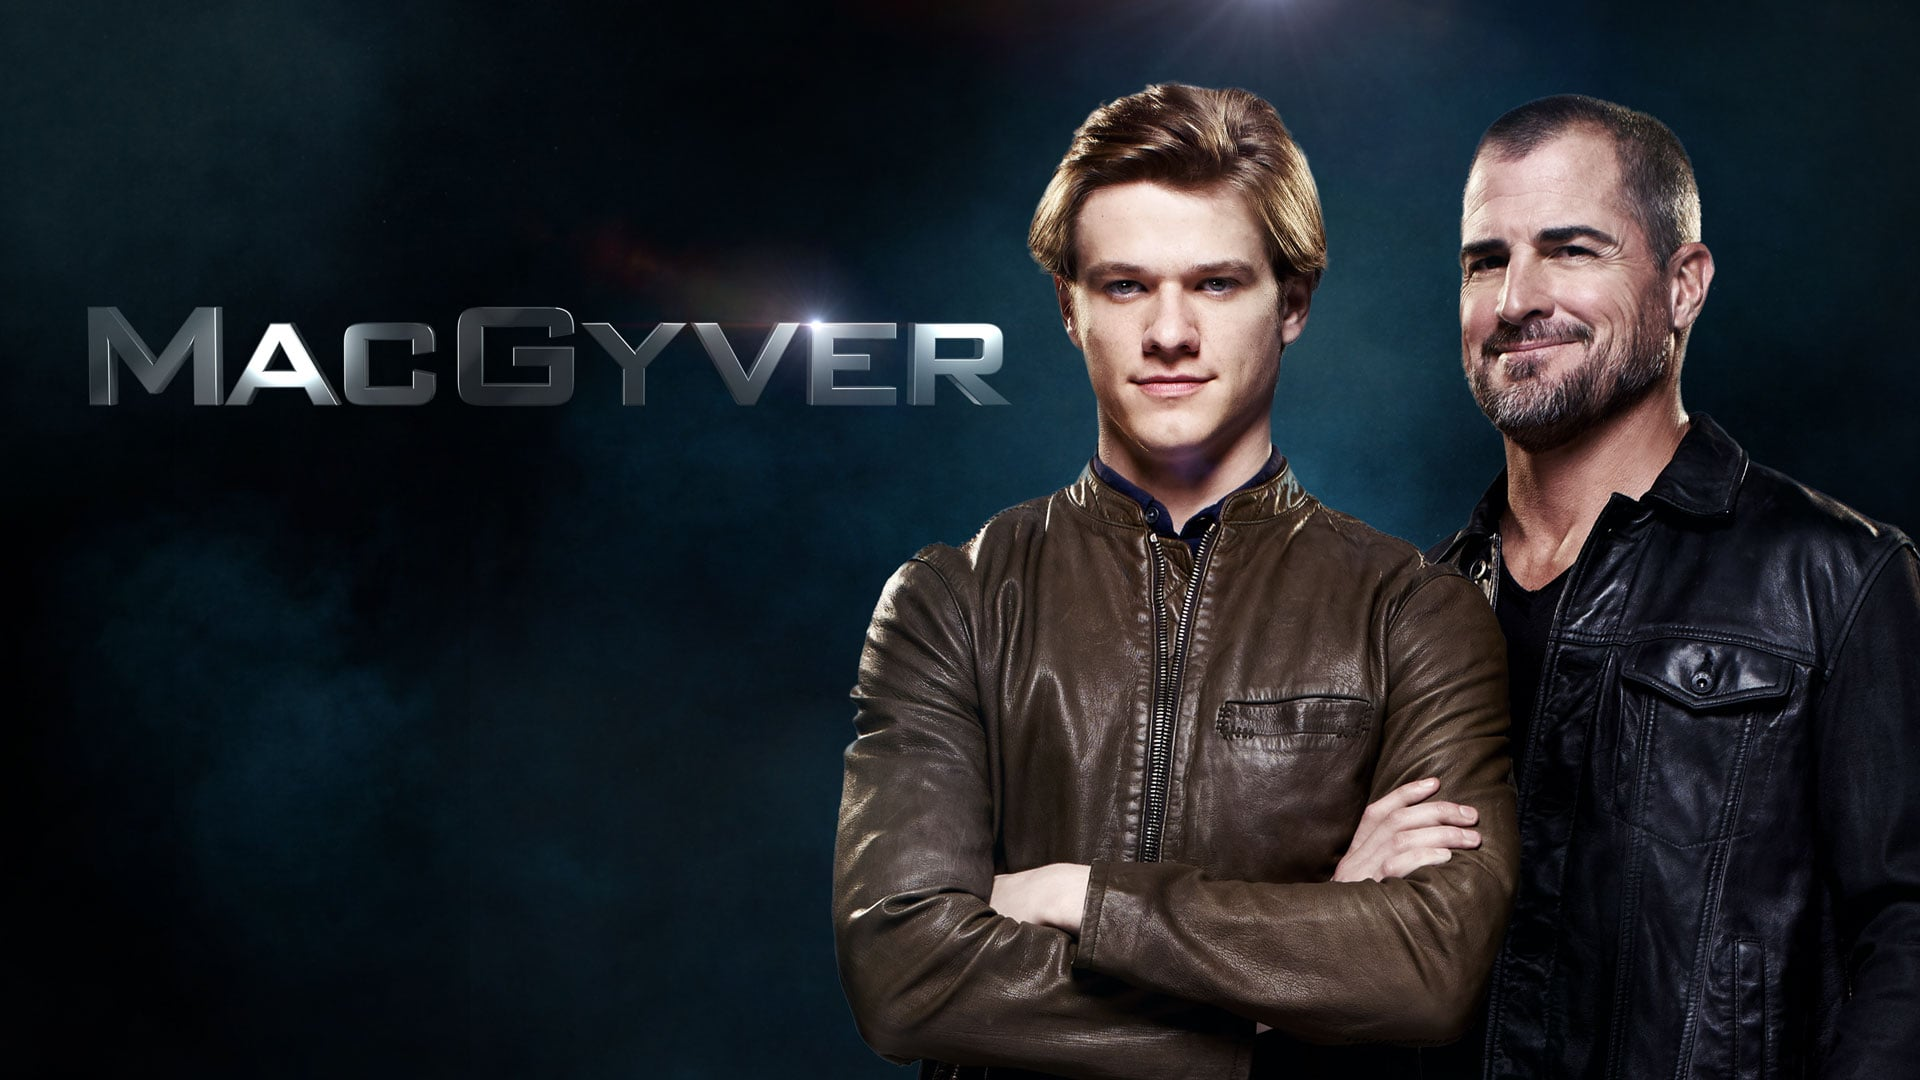 MacGyver Season 5 Episode 1 Releases